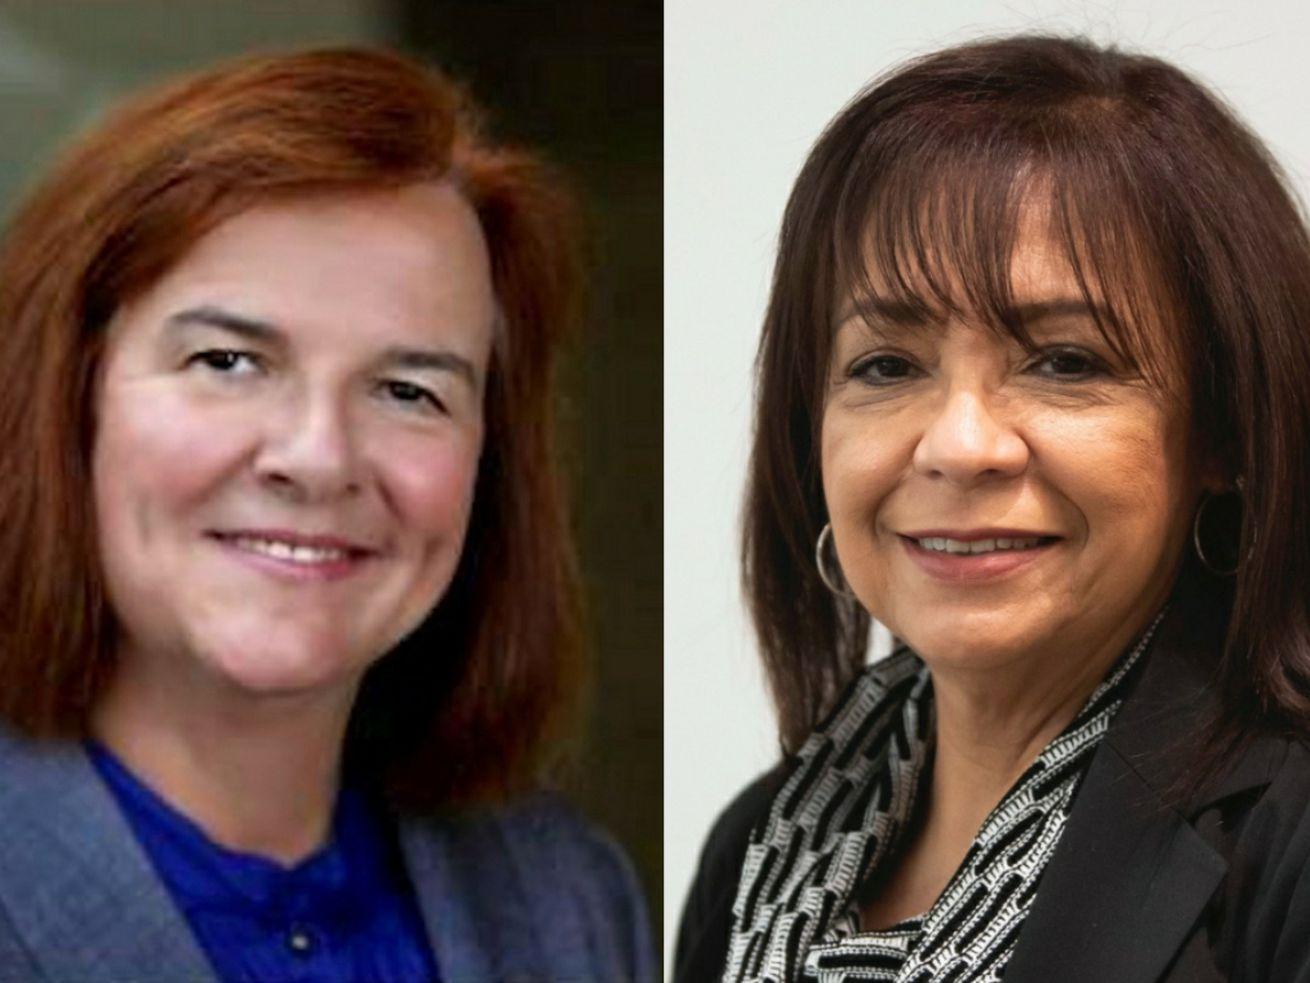 Republican Dr. Barbara Bellar, left, and Democratic state Sen. Iris Martinez, right.